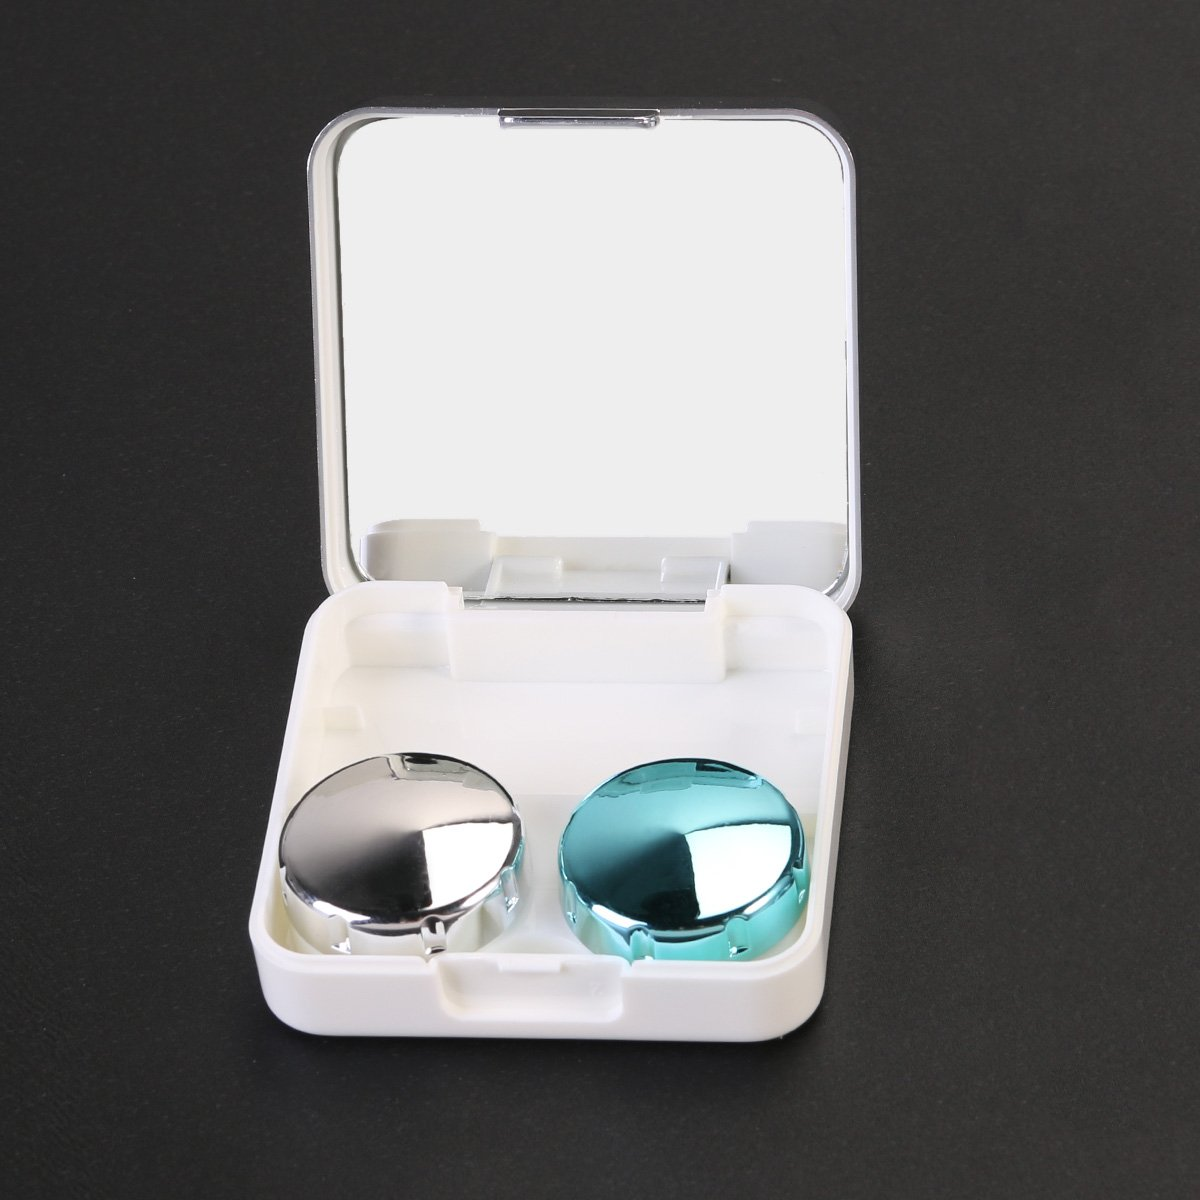 ULTNICE Travel Contact Lens Case Mini Box Container Contact Lens Holder (Silver white) by ULTNICE (Image #3)